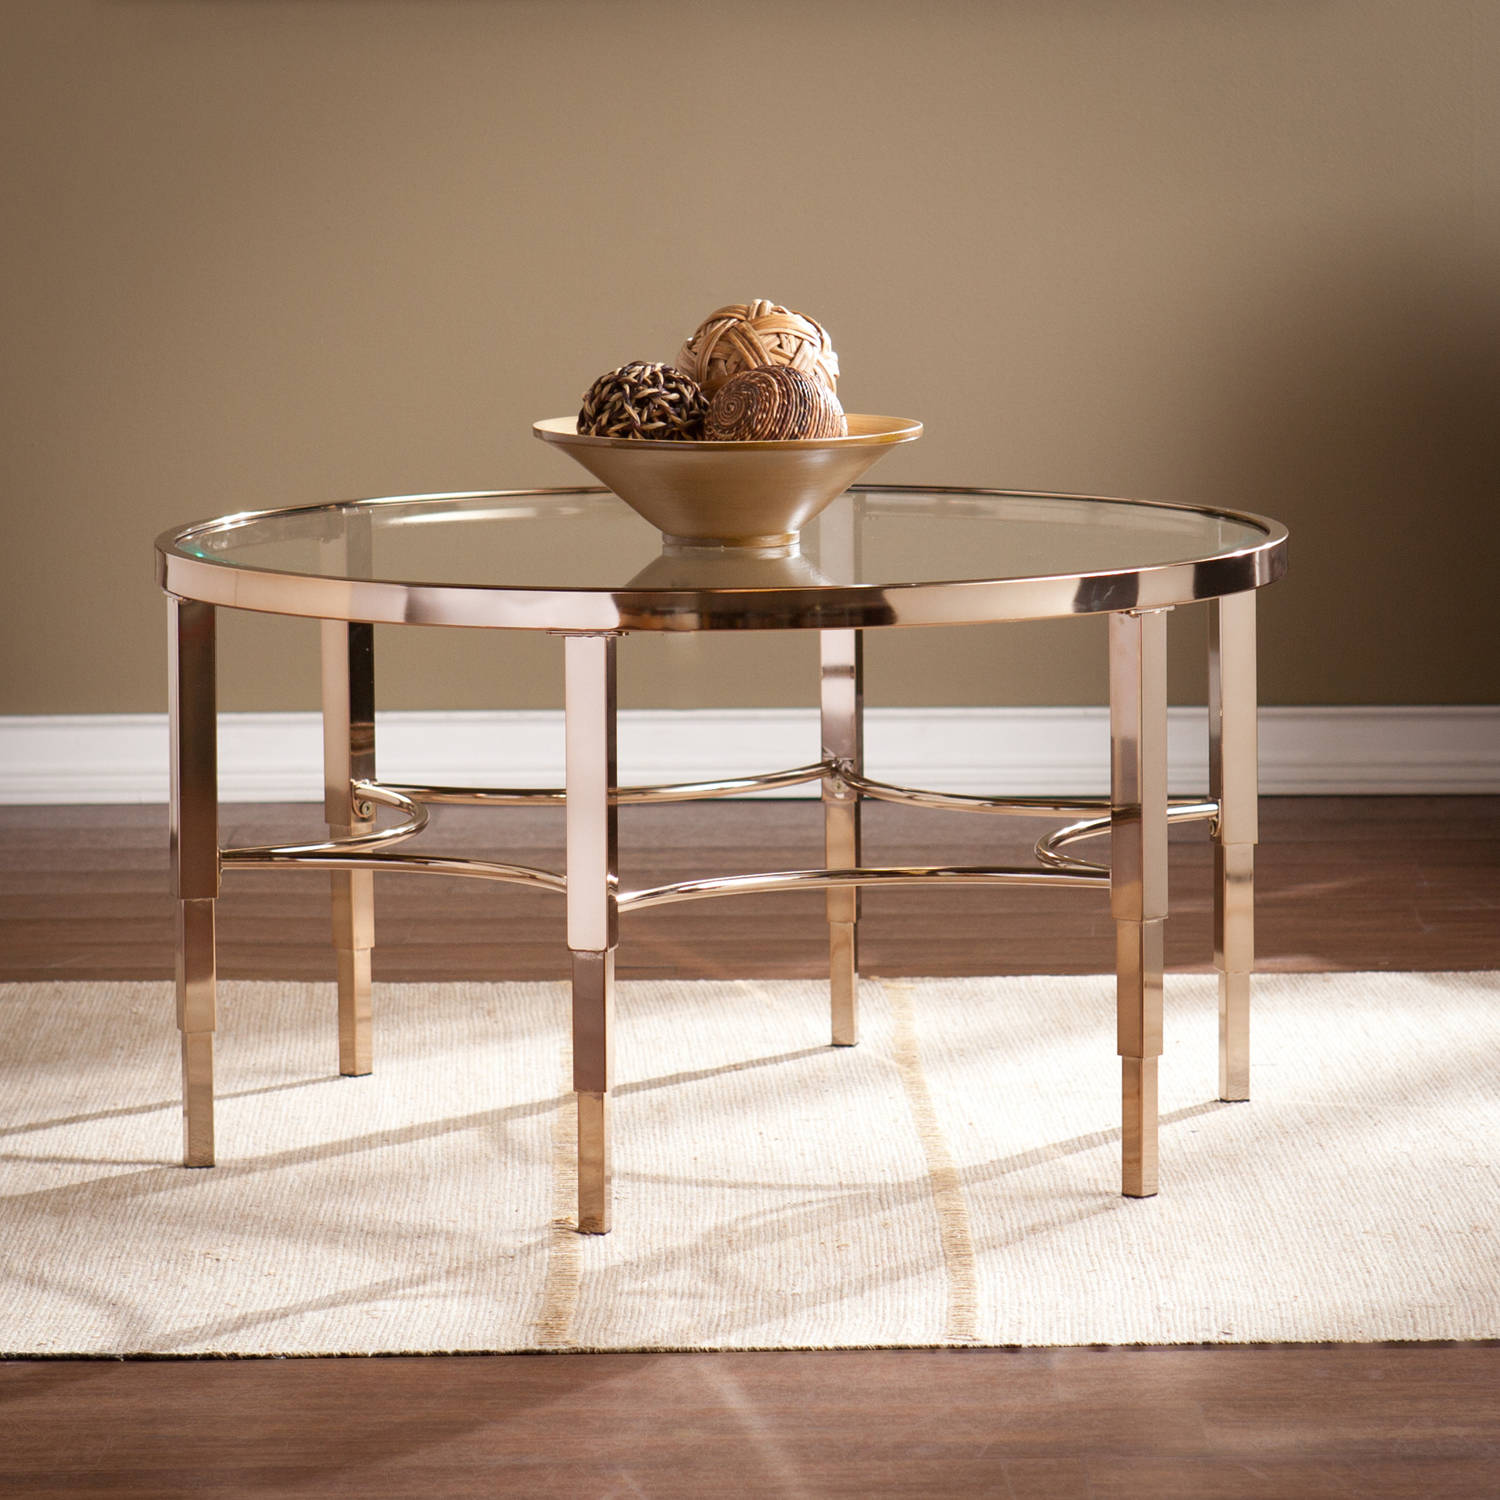 Southern Enterprises Sicily Art Deco Cocktail Table, Metallic Gold